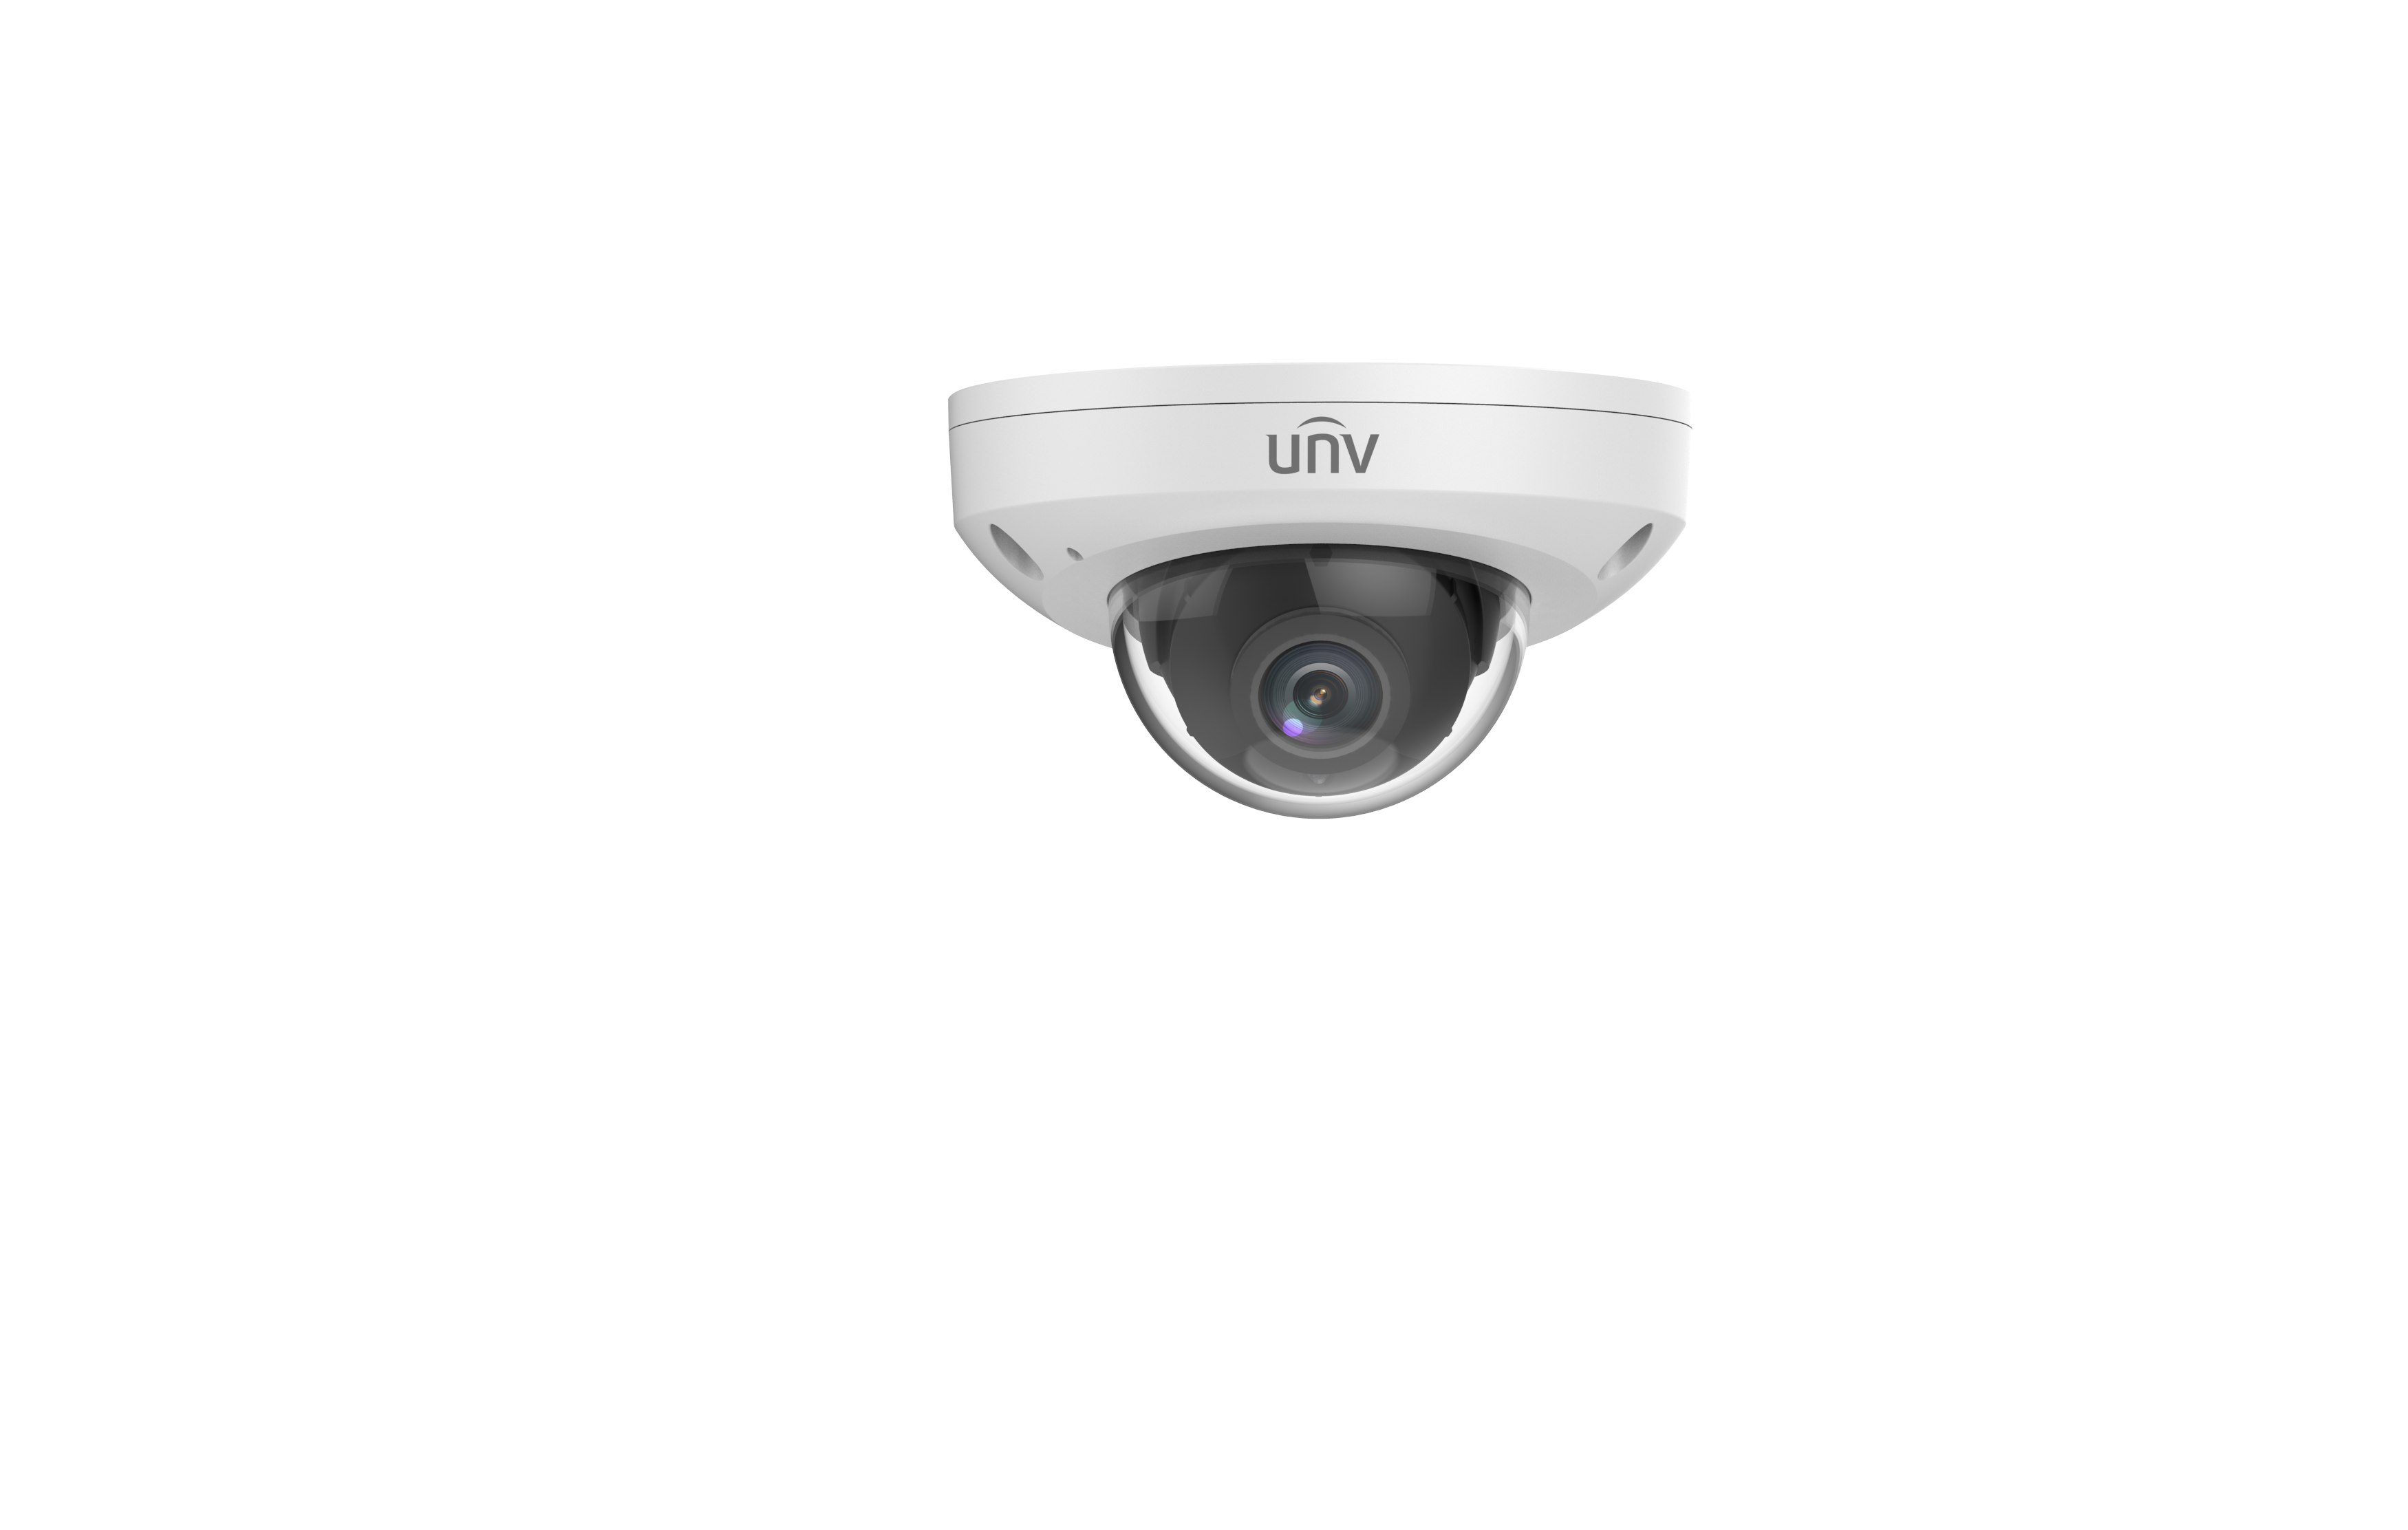 Uniview 4MP H.265 3.6mm Fixed Wedge Dome with 15m IR